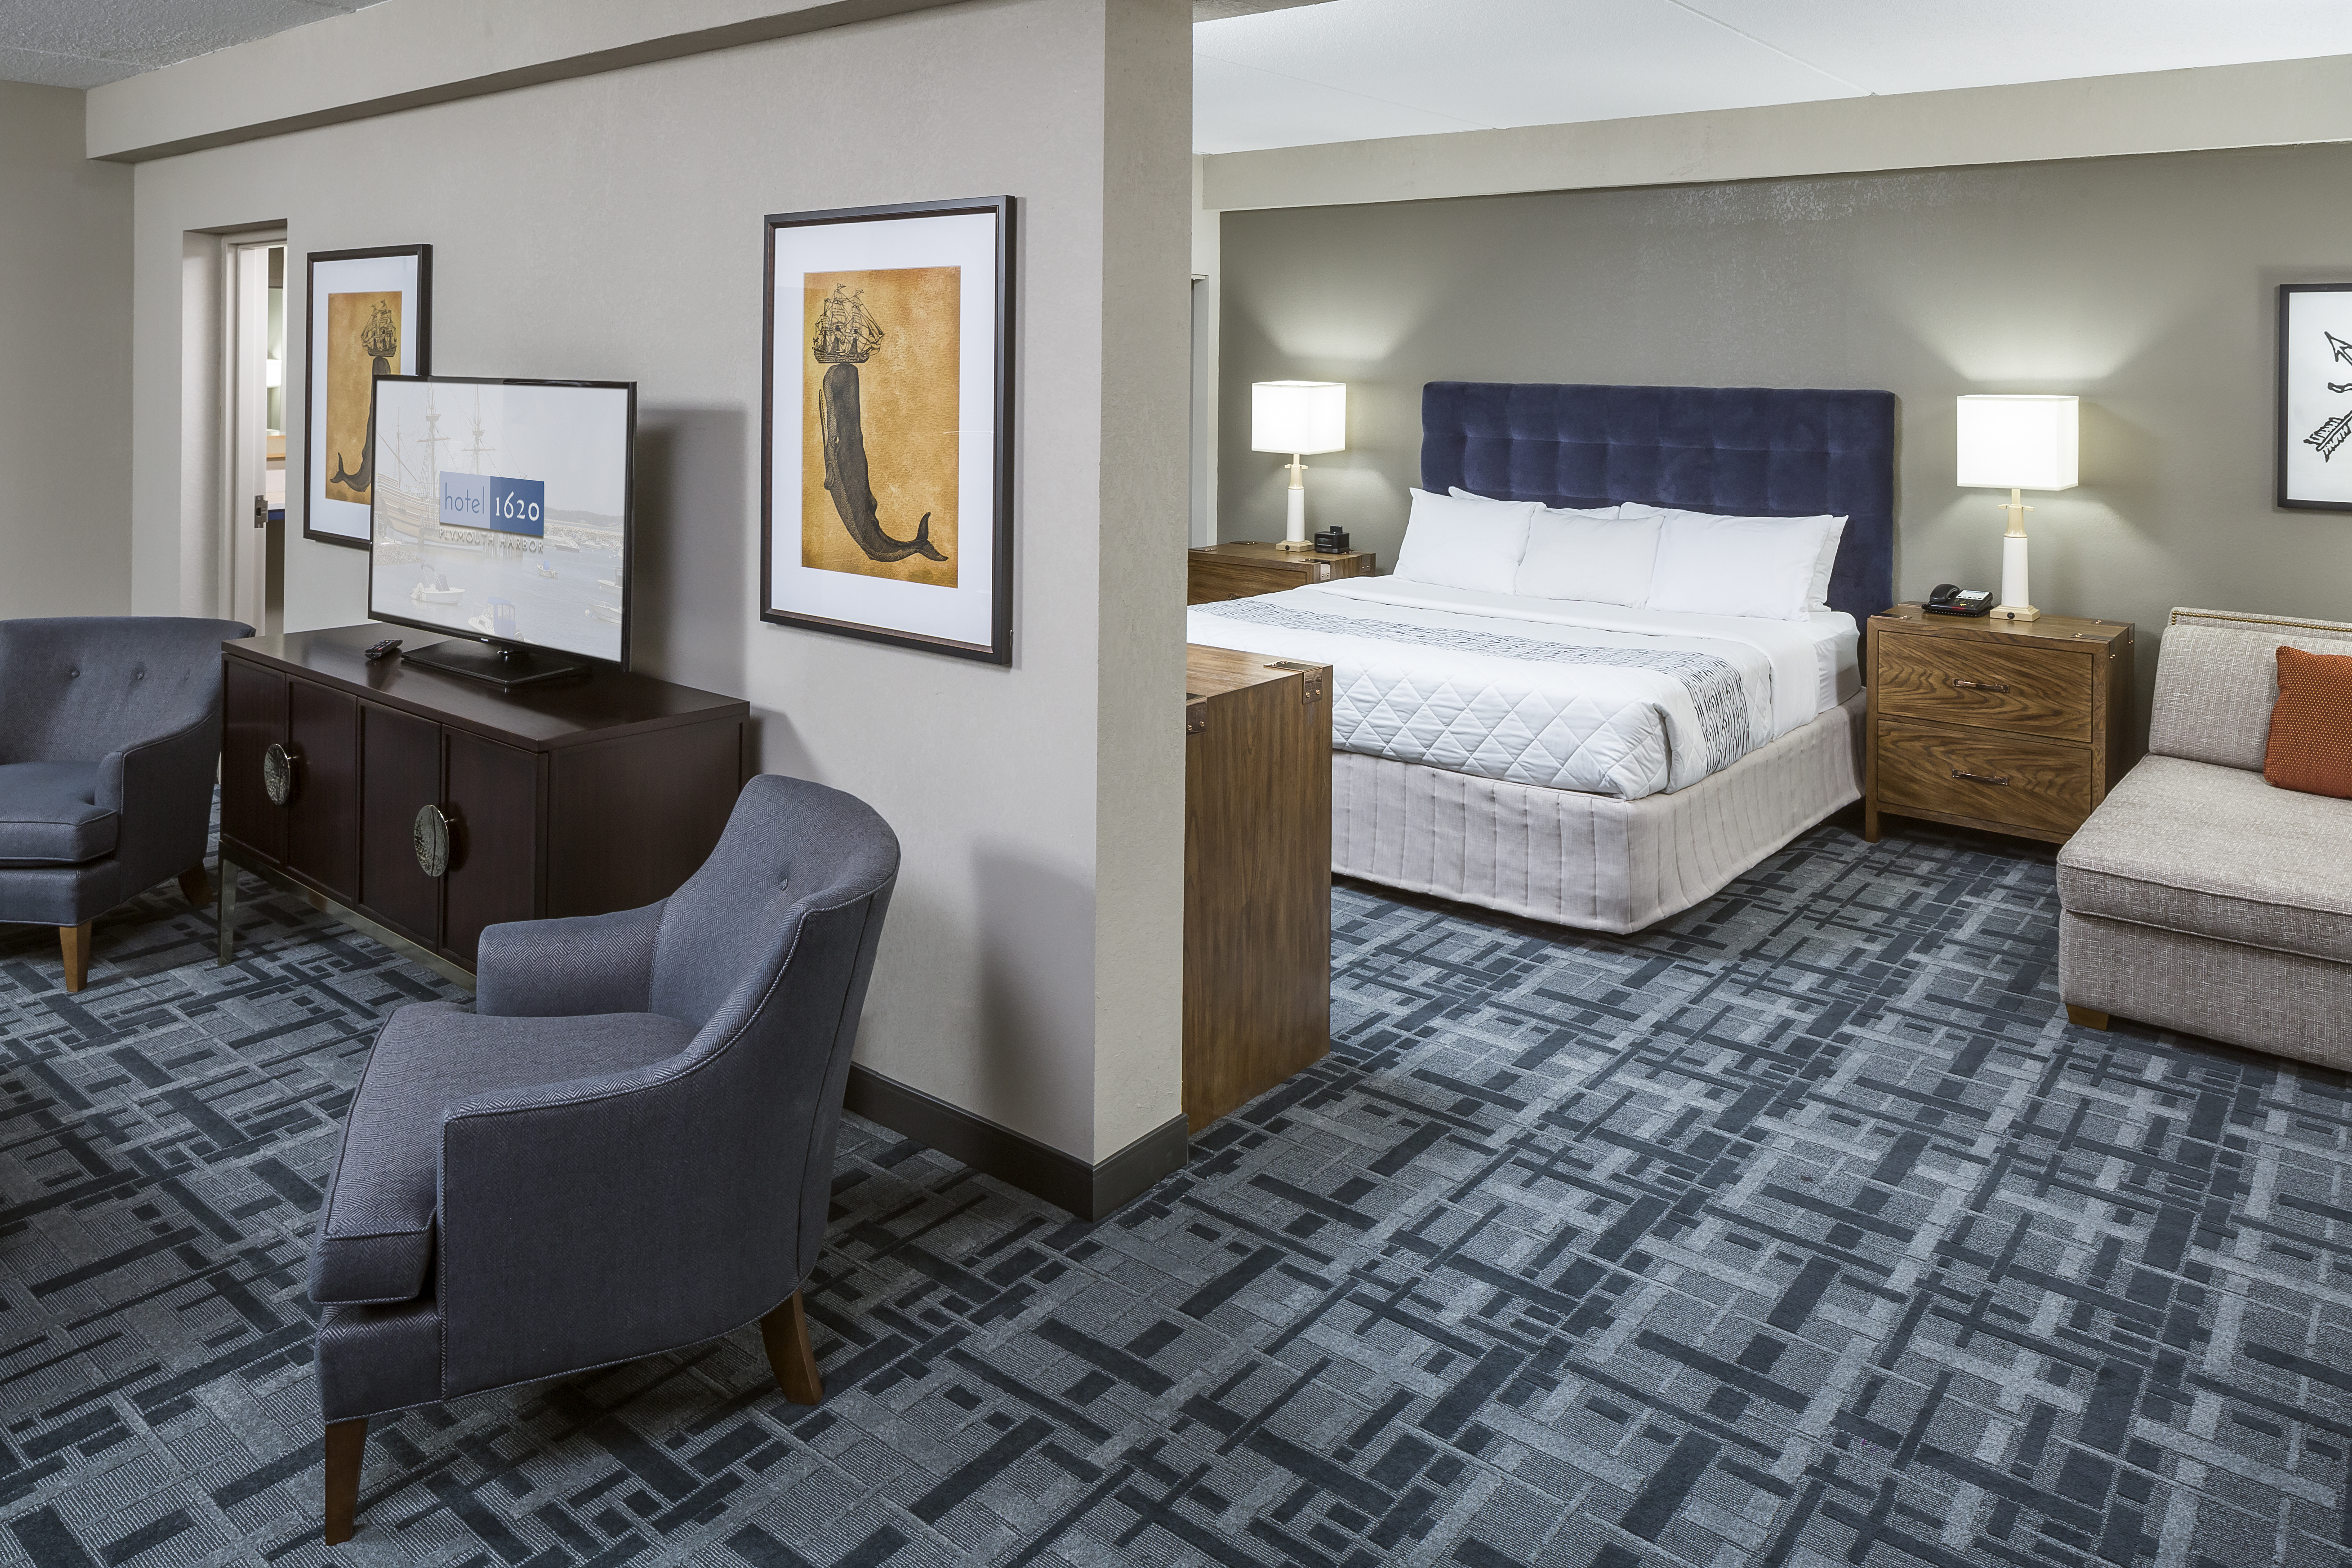 Hotel 1620 at Plymouth Harbor - Product shown: The Foundry Collection by Stacy Garcia for Bernhardt Hospitality